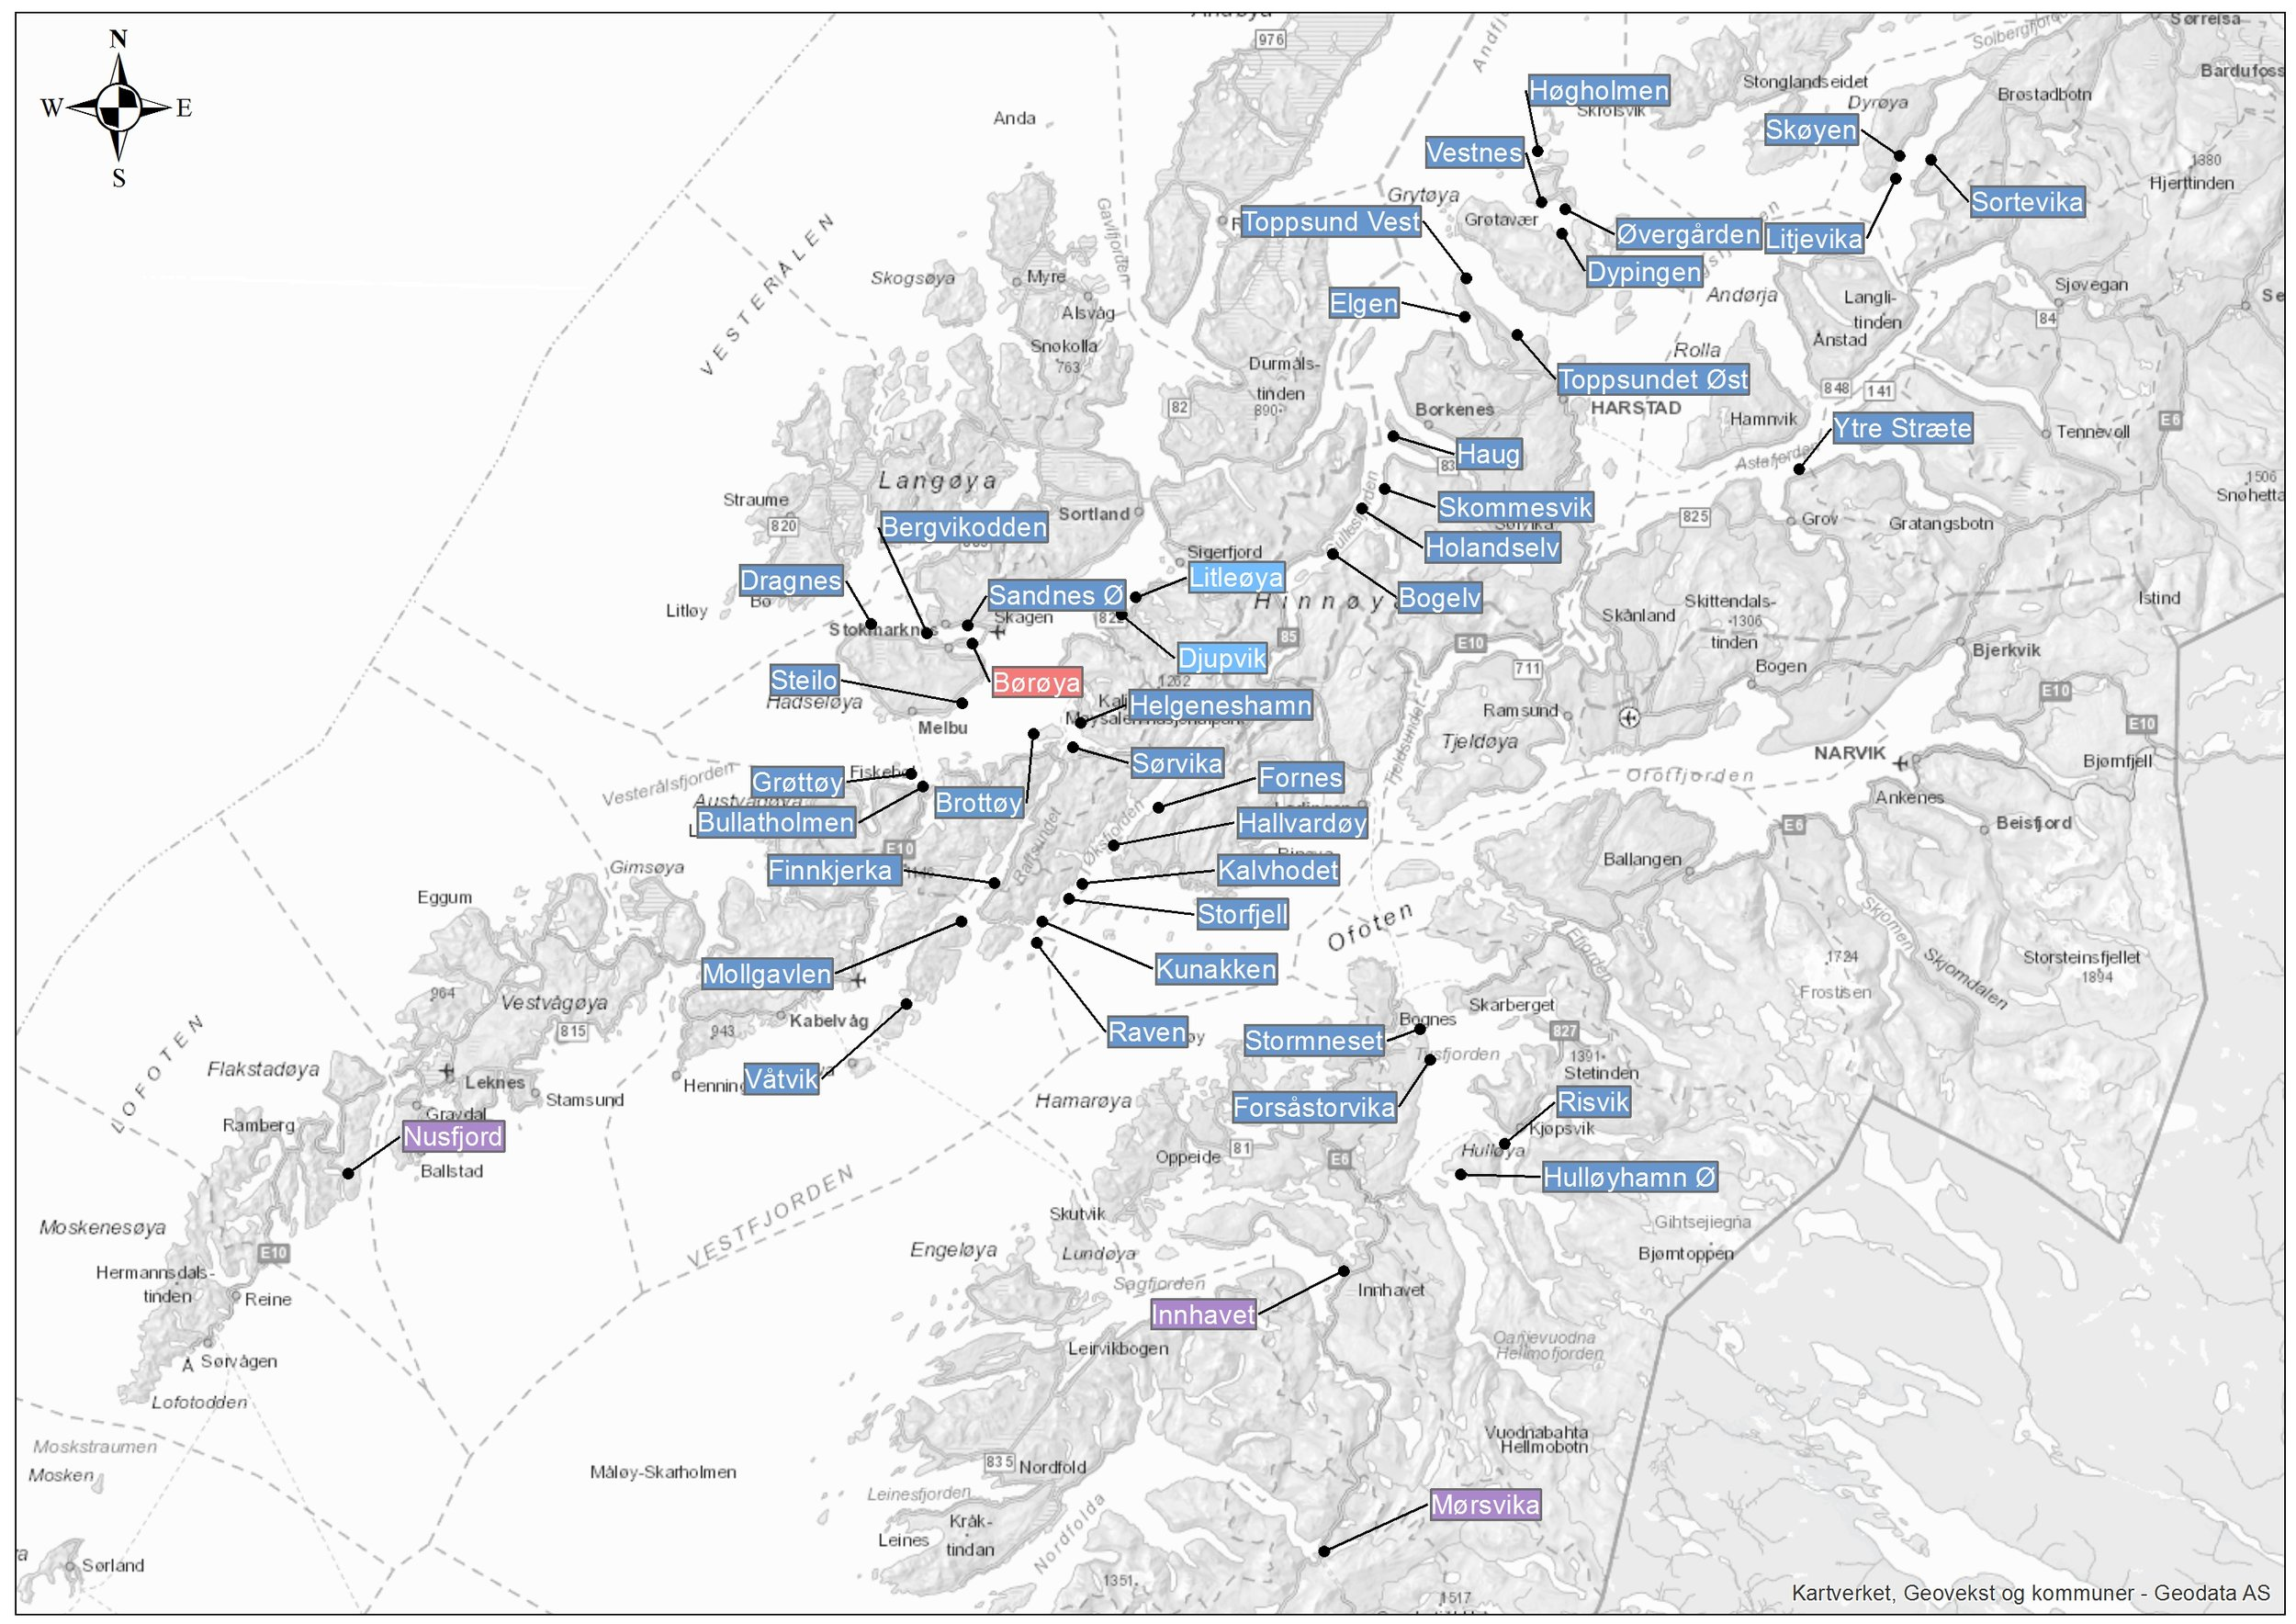 Nordlaks' aquaculture sites. Blue: aquaculture farms in the sea. Purple: acuaculture sites on land (smolt). Red: Main office and processing. Lighter blue: Farms for tourist/visiting and educational purposes. Click to enlarge.